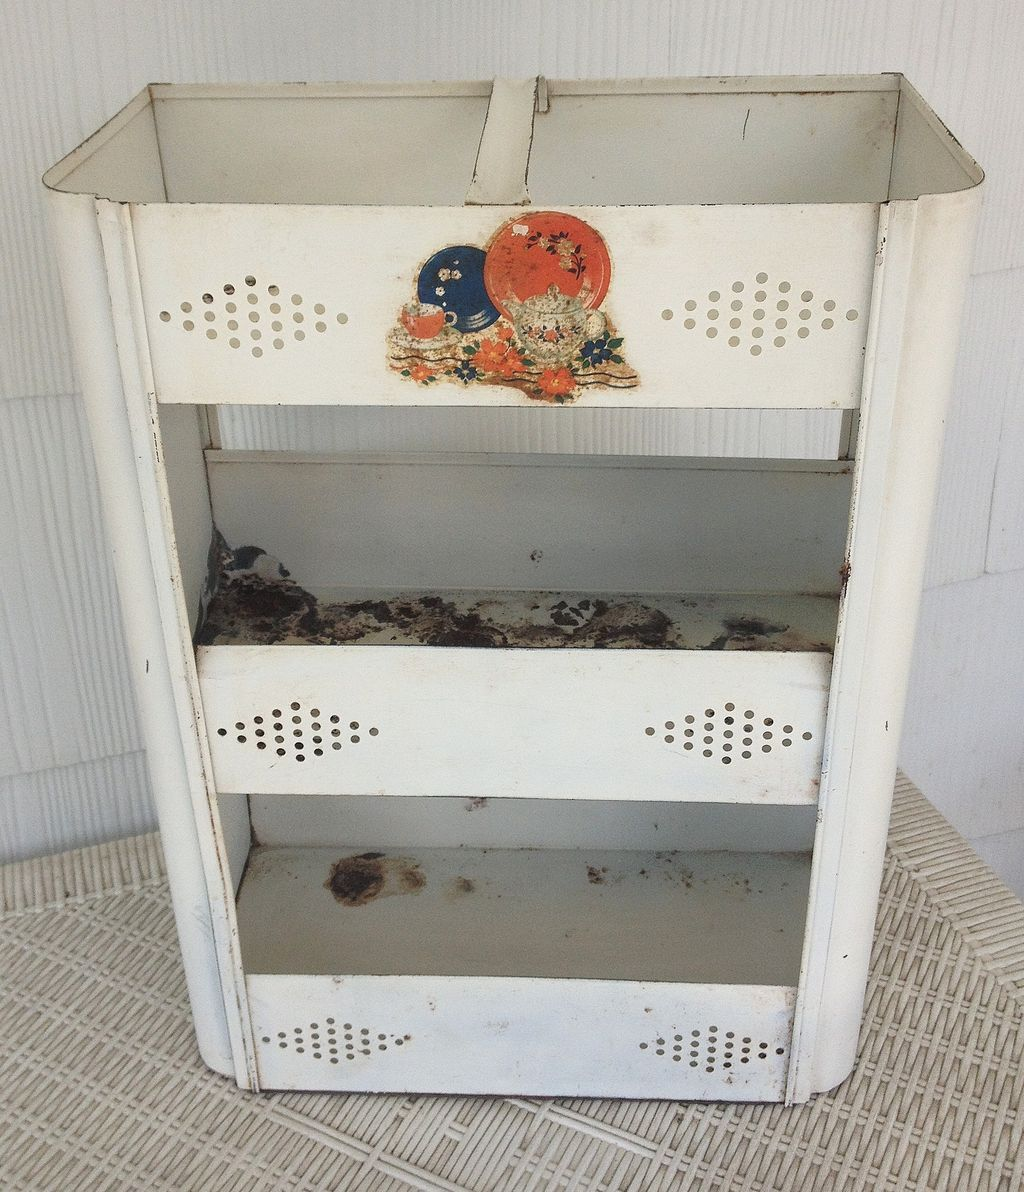 vintage metal kitchen vegetable storage bin from rubylane